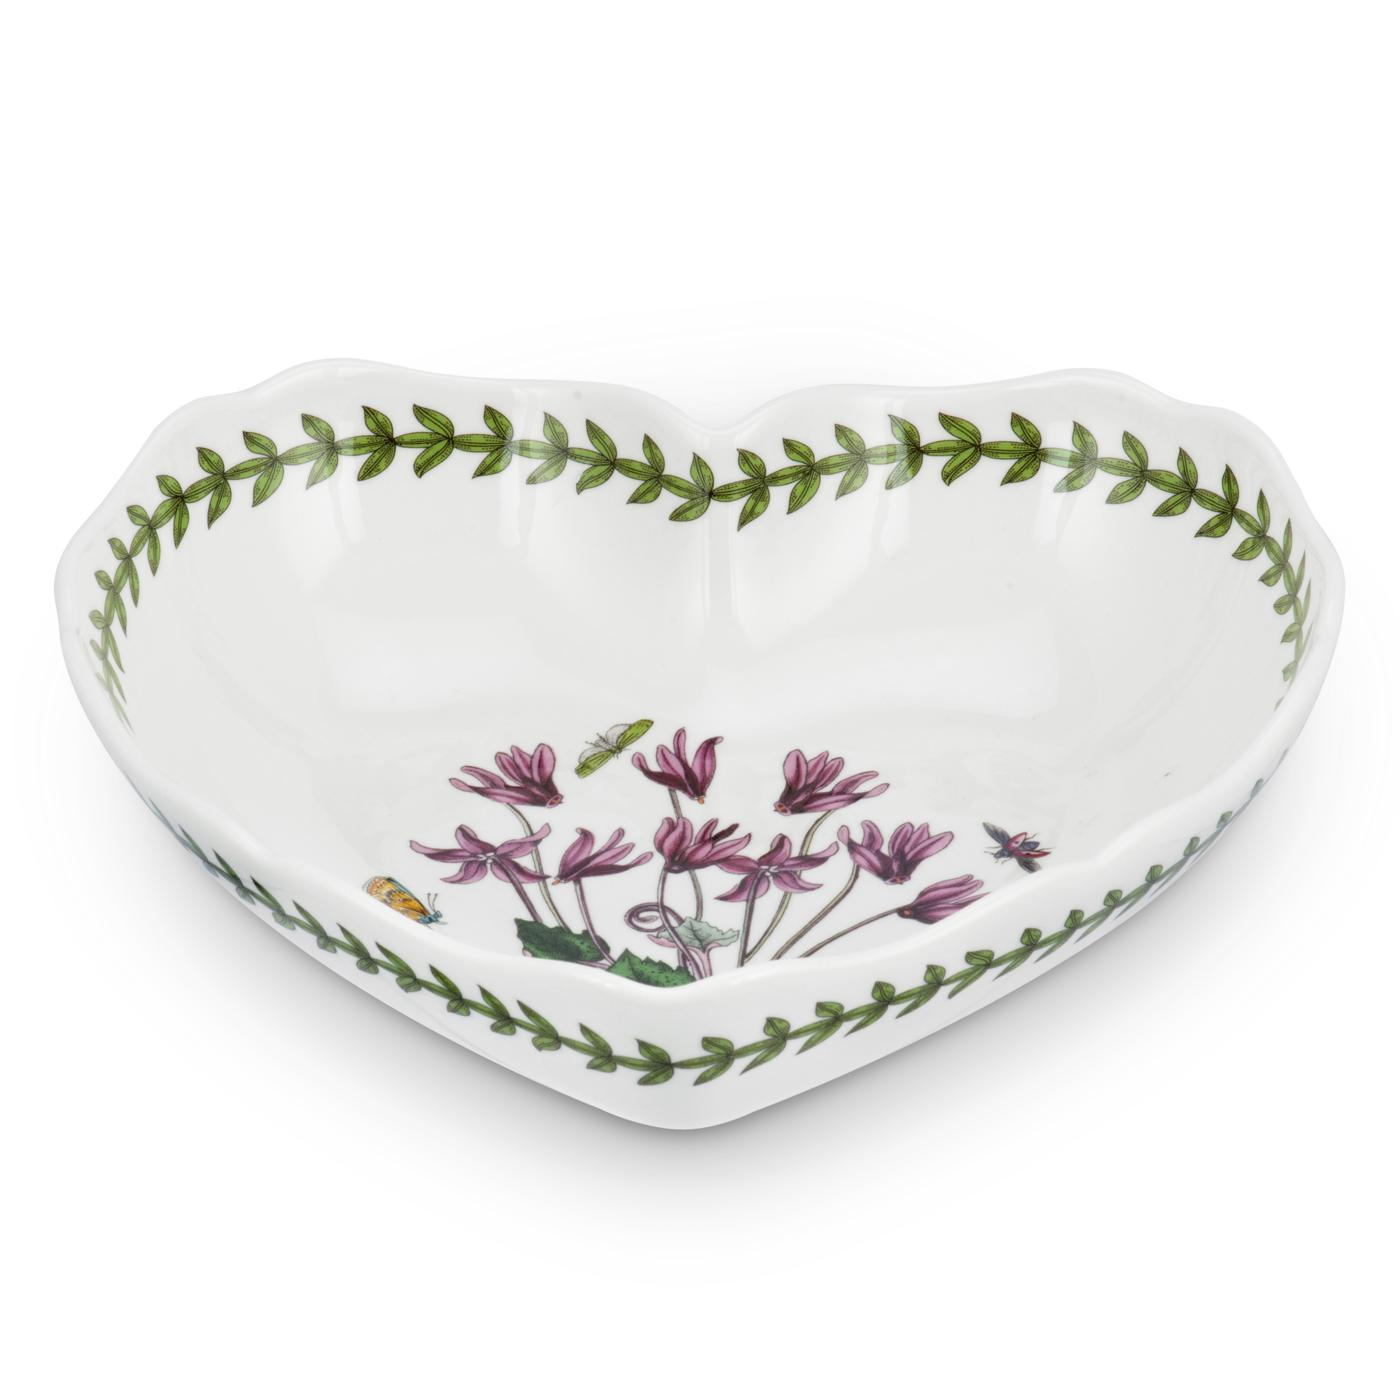 Portmeirion Botanic Garden Scalloped Edge Heart Shaped Dish image number 0